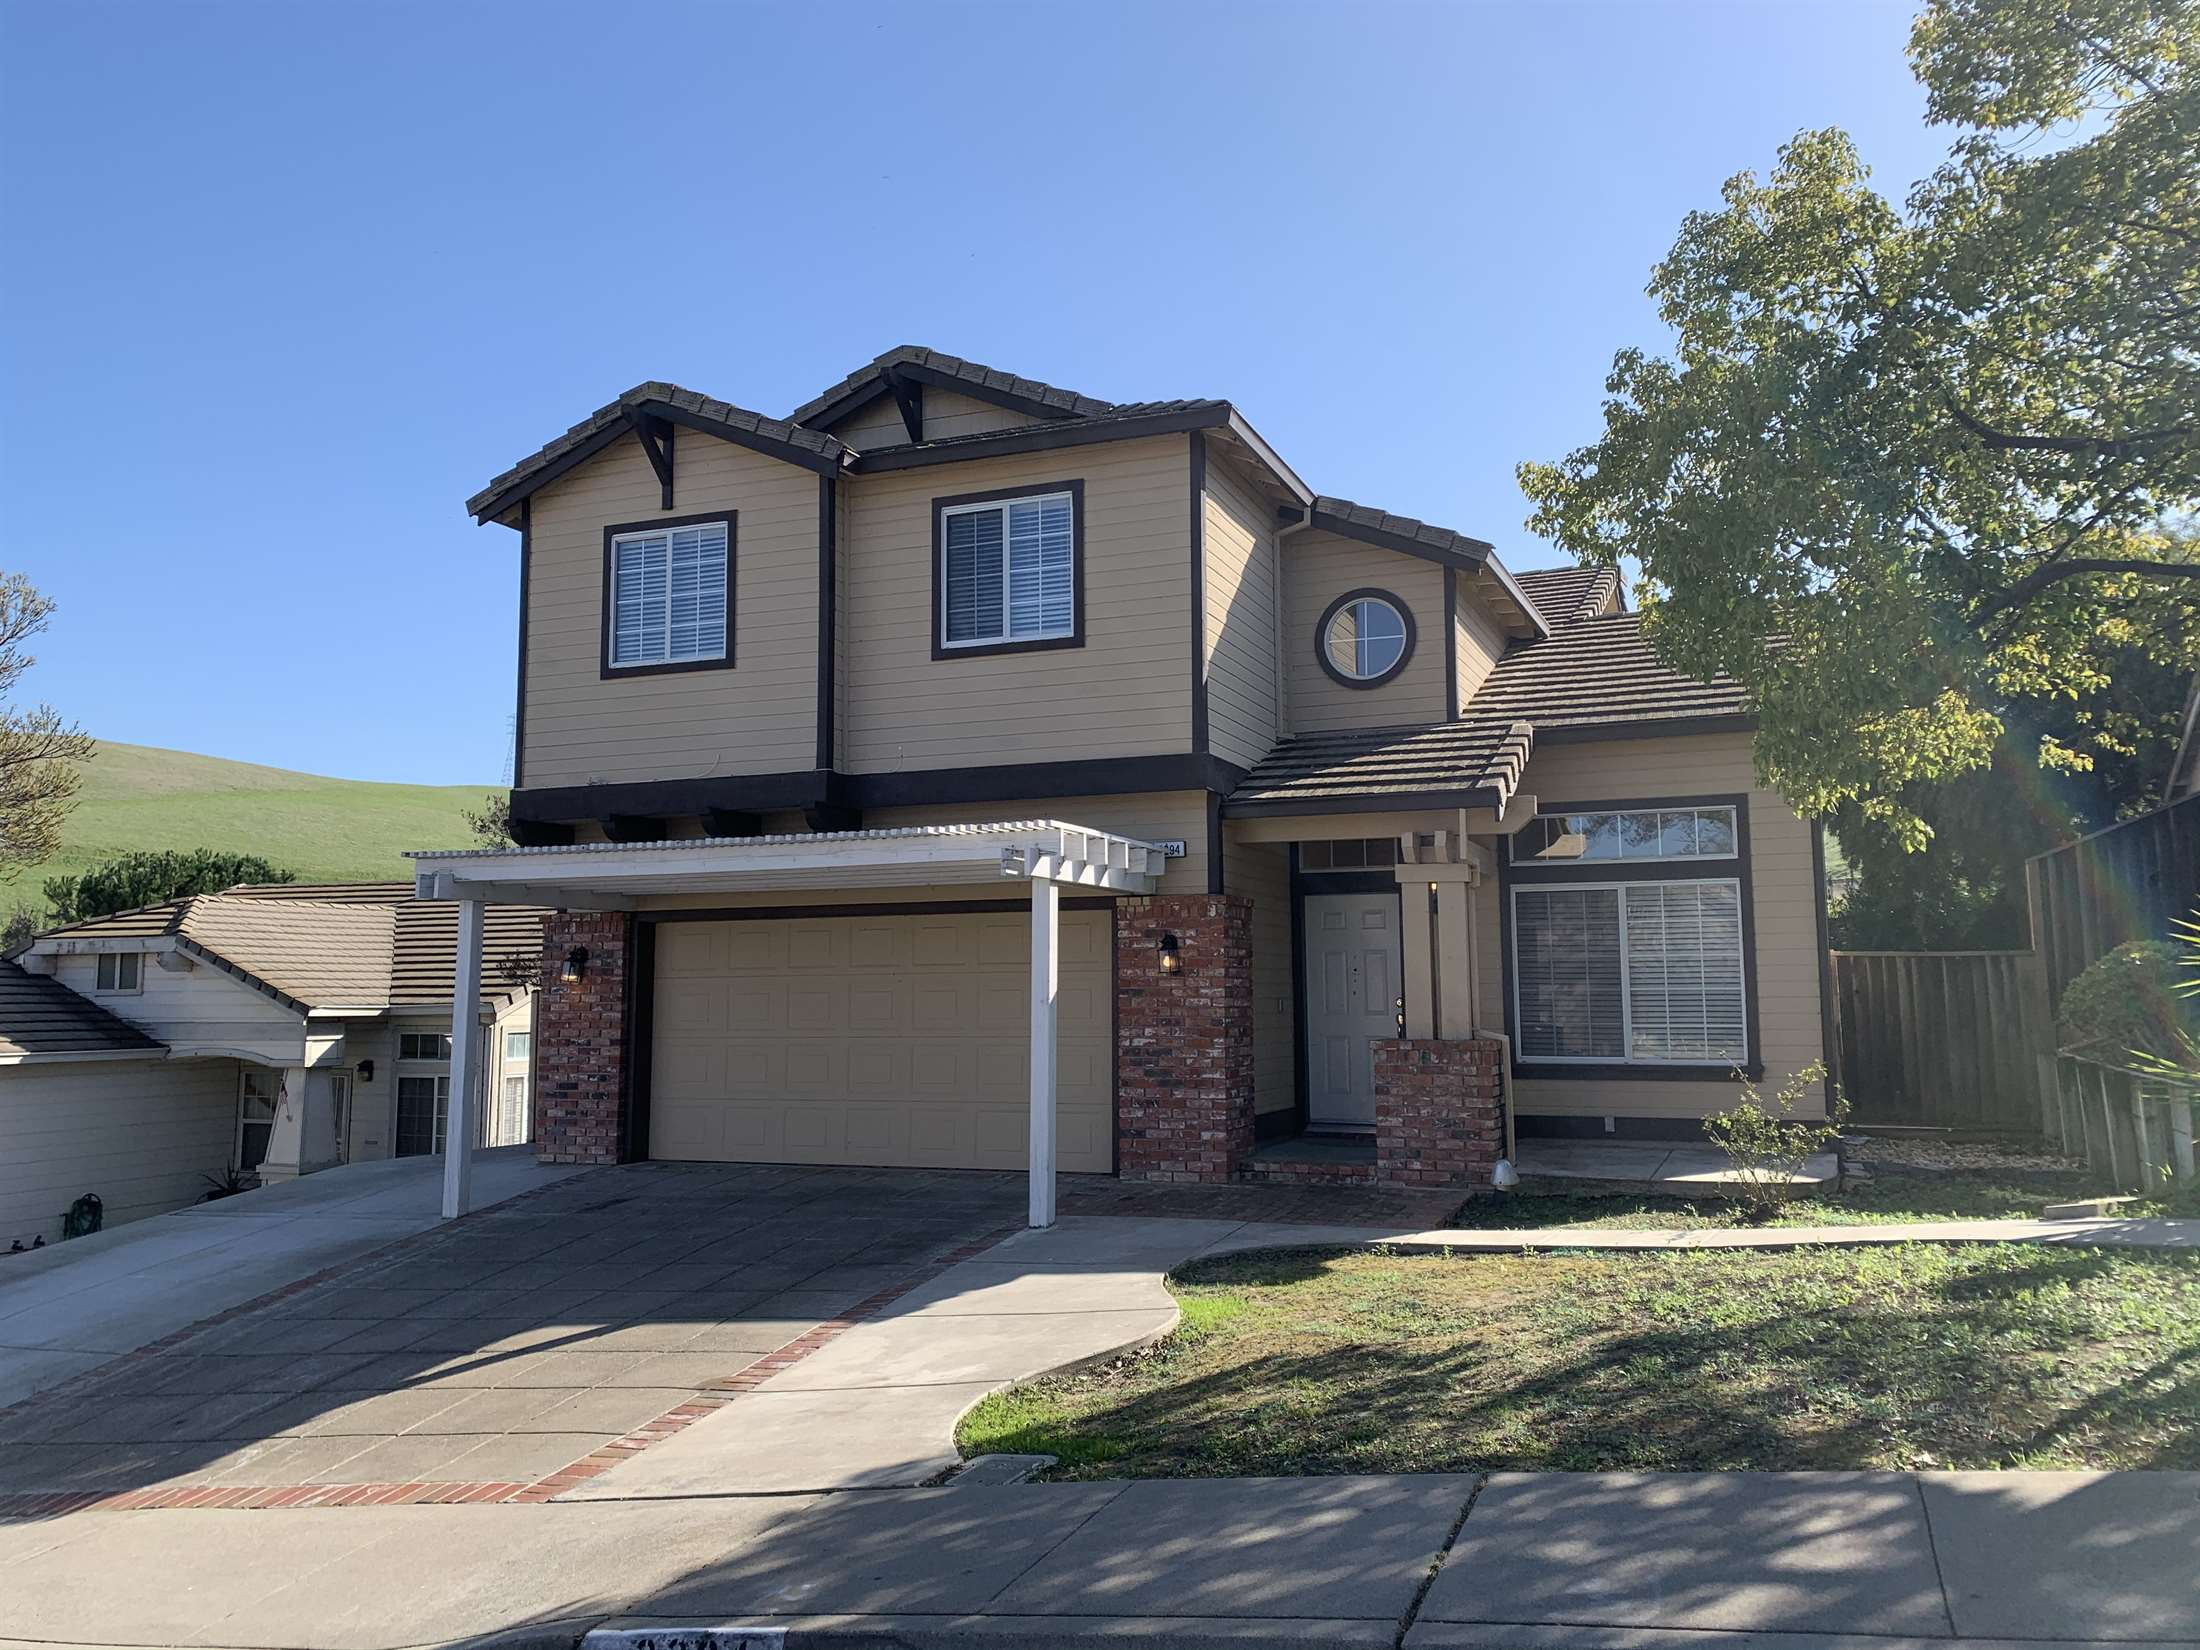 2294 Willow Ave, Bay Point, CA 94565